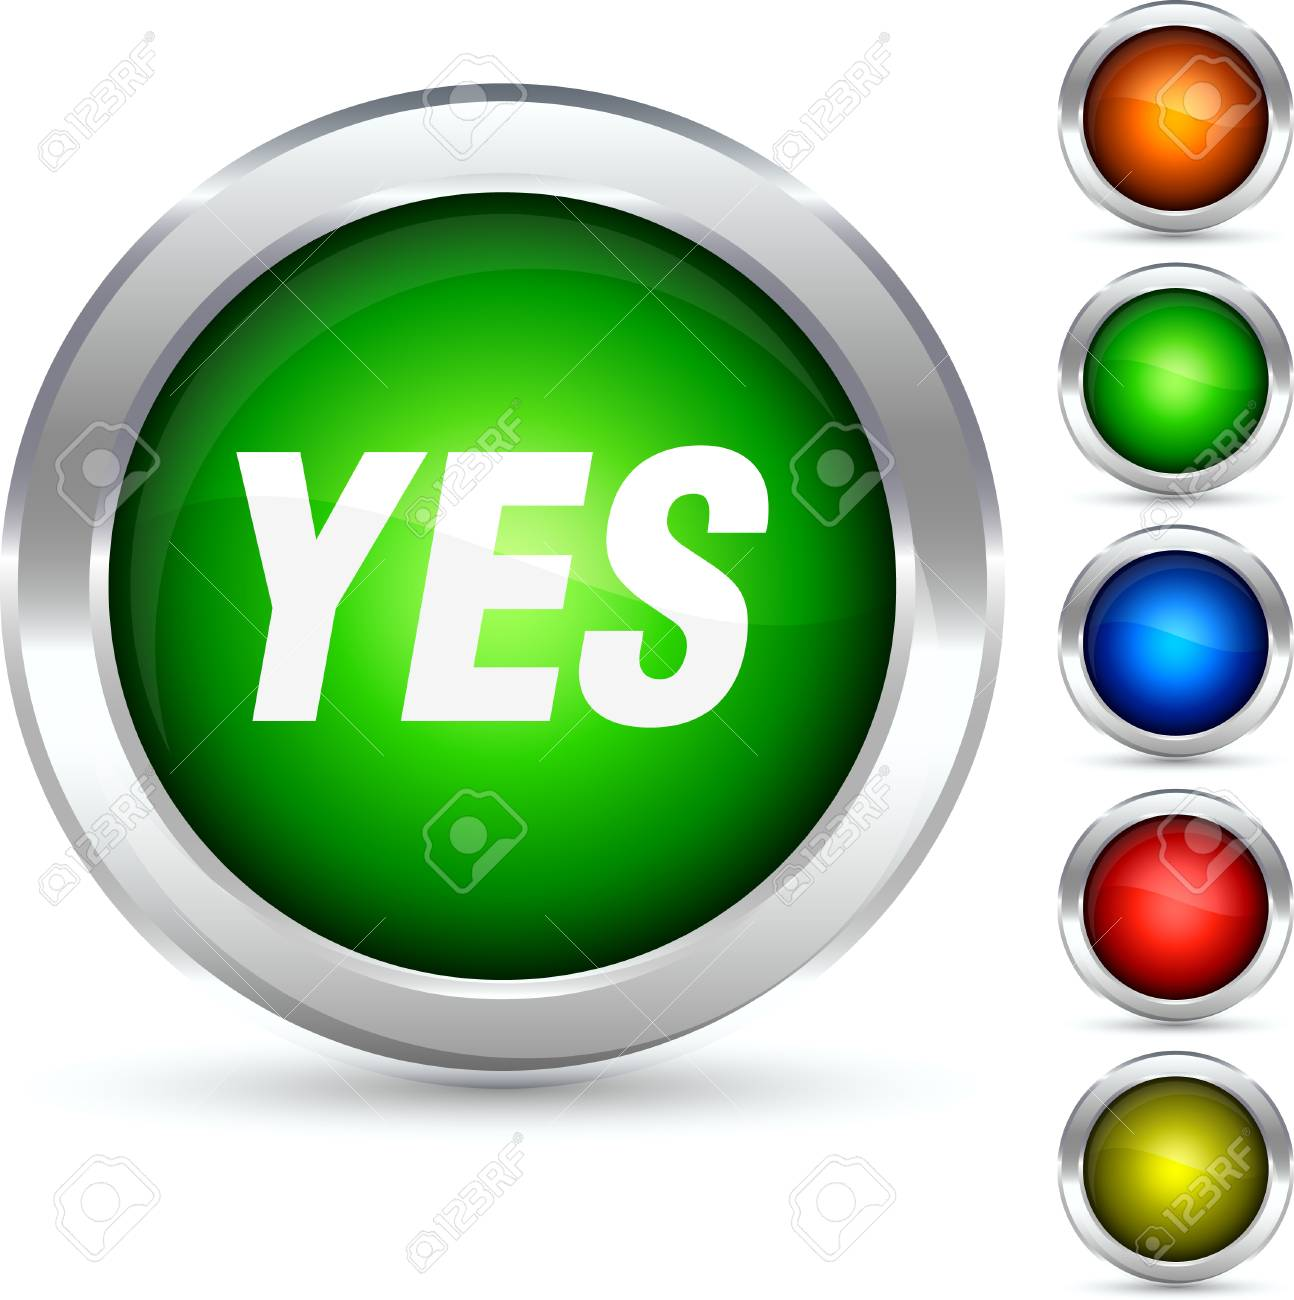 Yes detailed button. Vector illustration. Stock Vector - 5310658